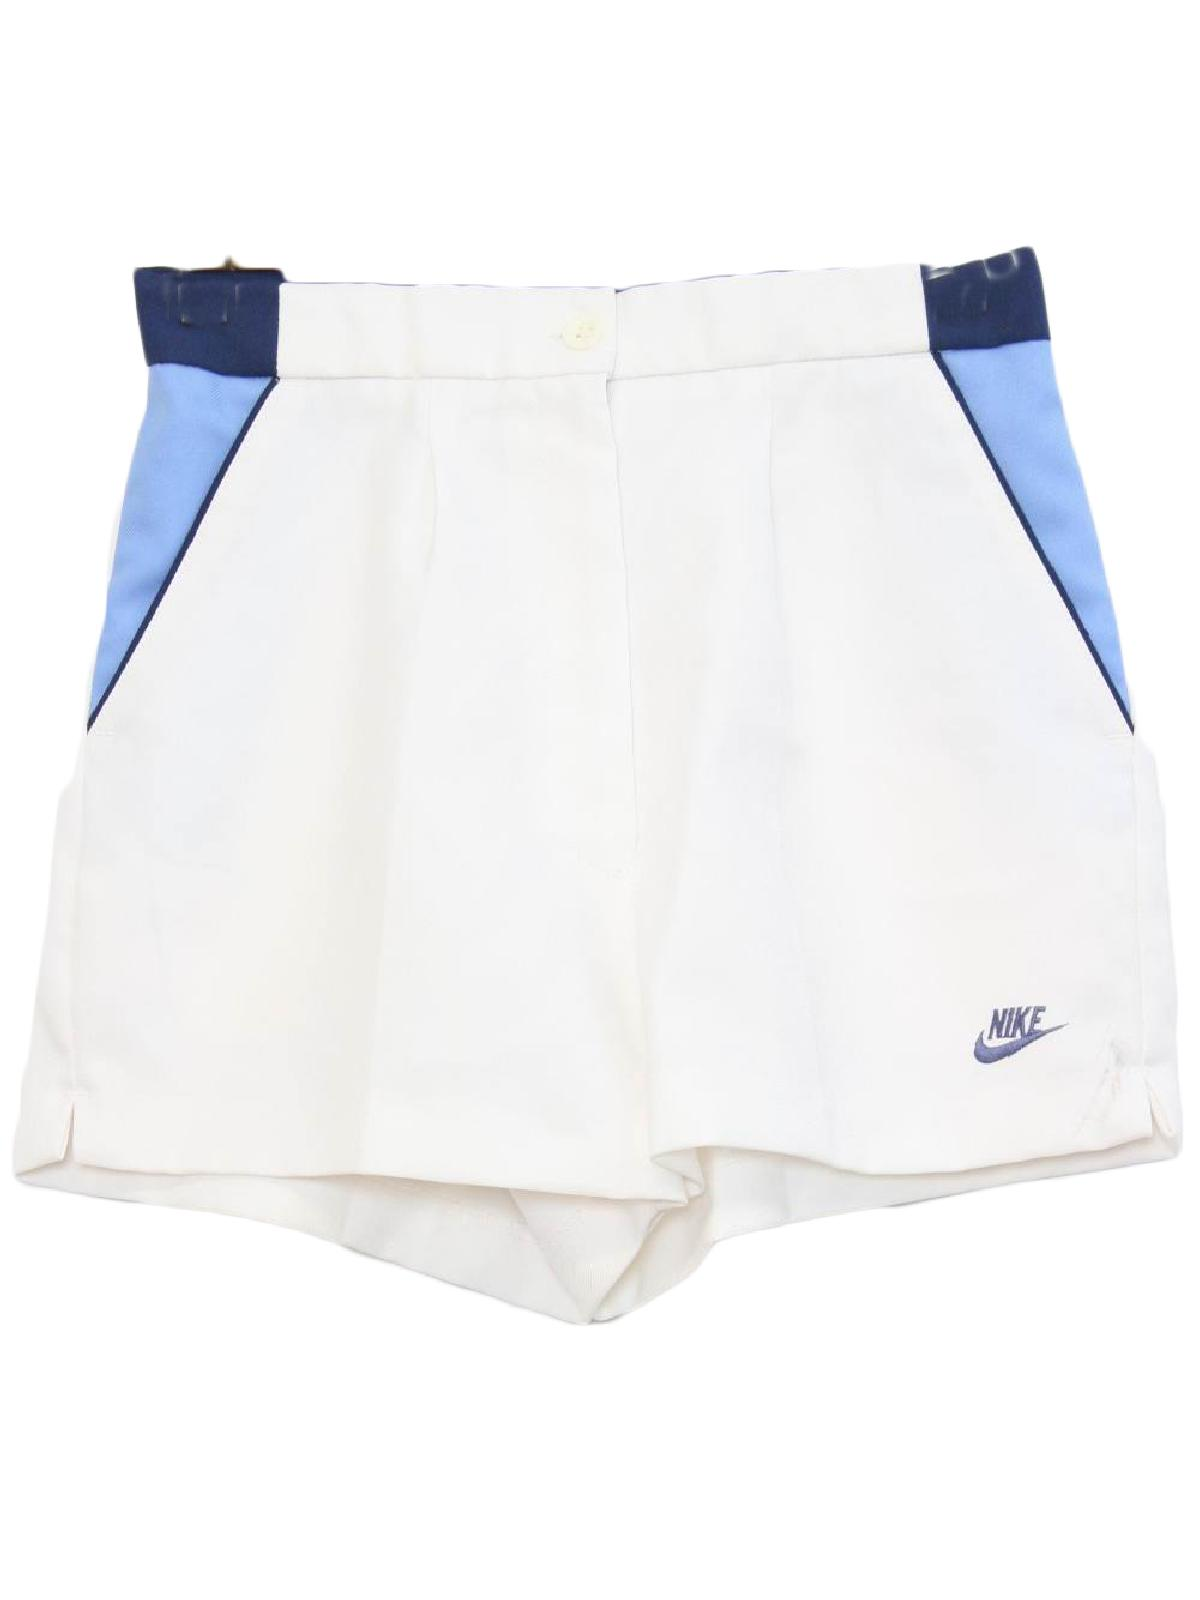 80s Vintage Nike Shorts  80s -Nike- Womens white with blue on blue ... 95b43ab5a